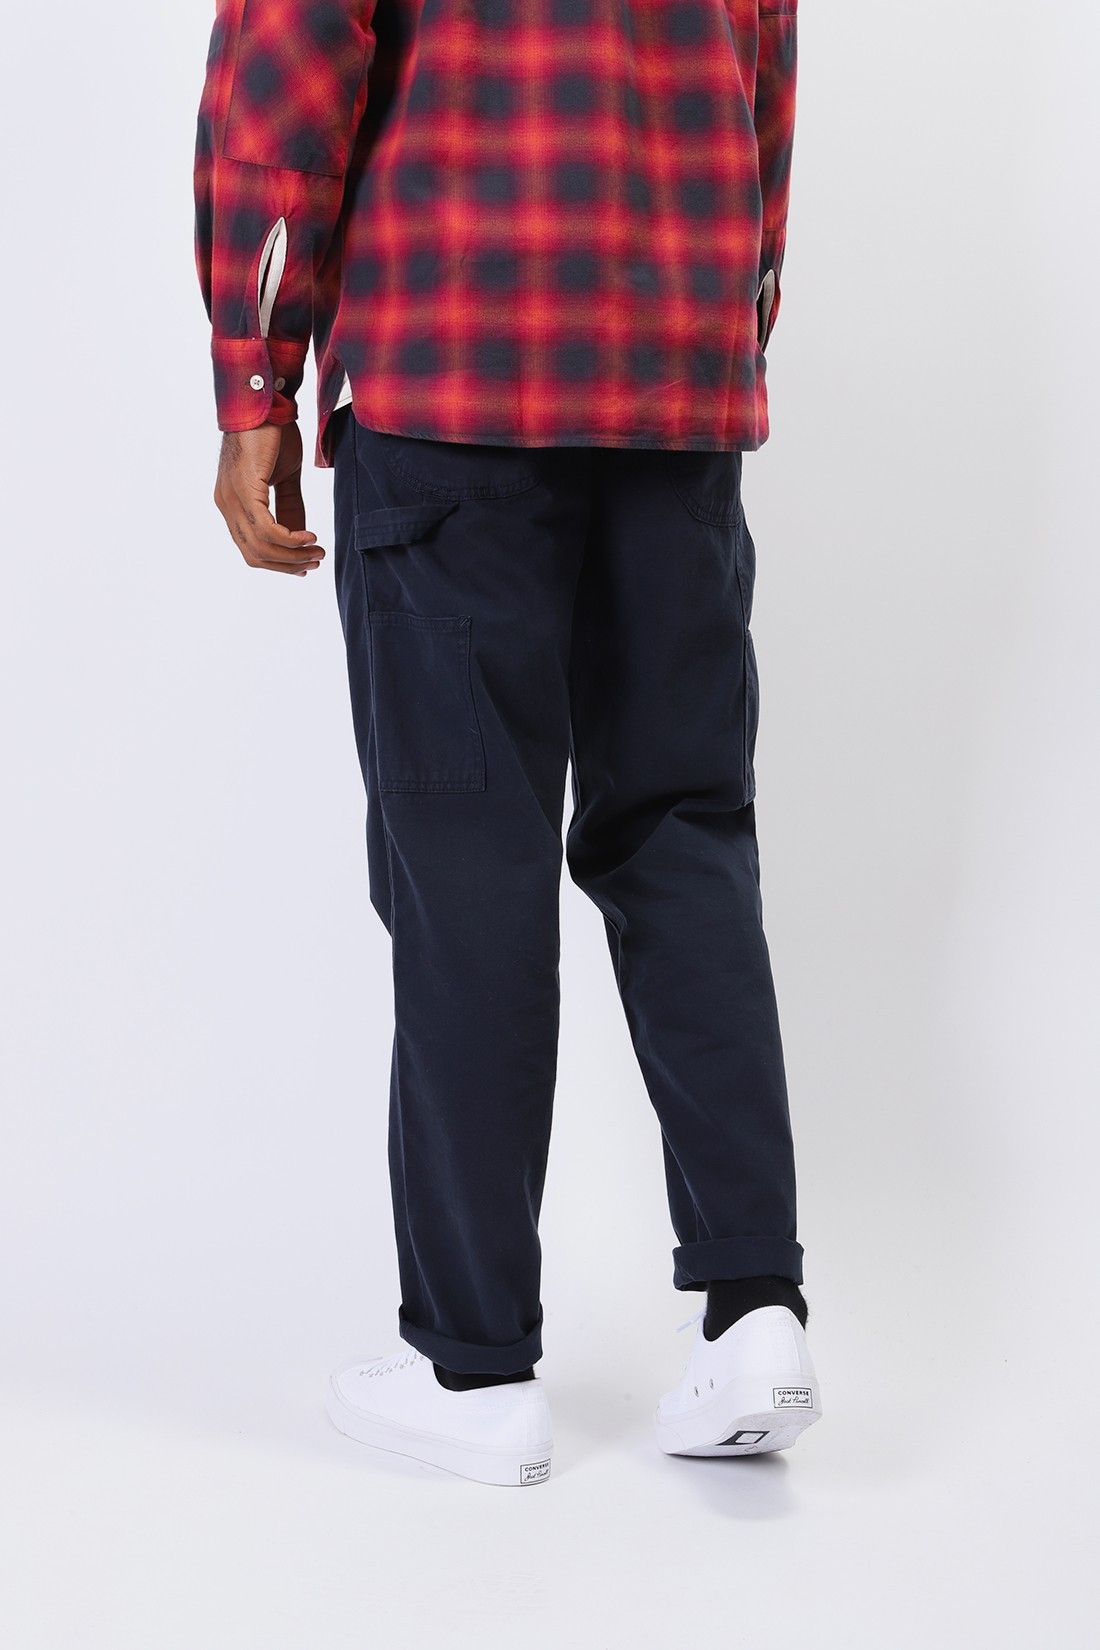 STAN RAY / 80s painter pant Navy twill